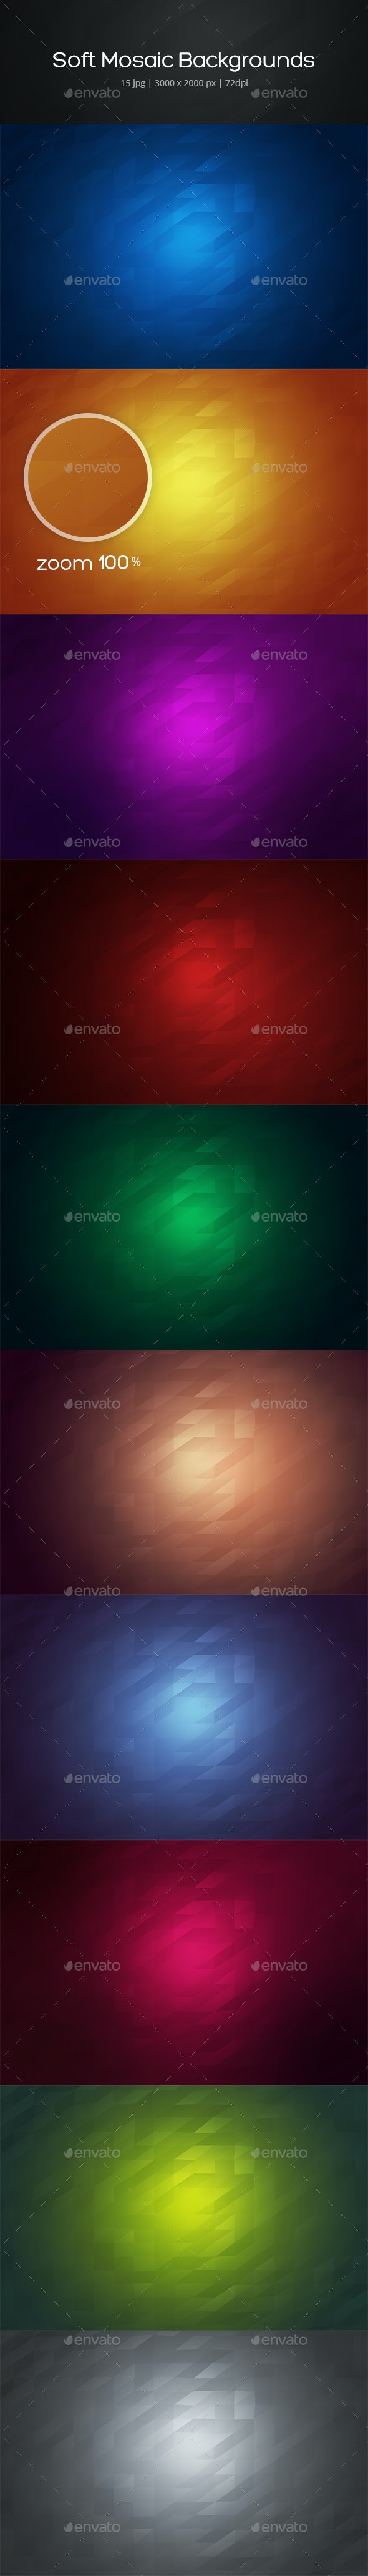 Soft Mosaic Backgrounds - Backgrounds Graphics